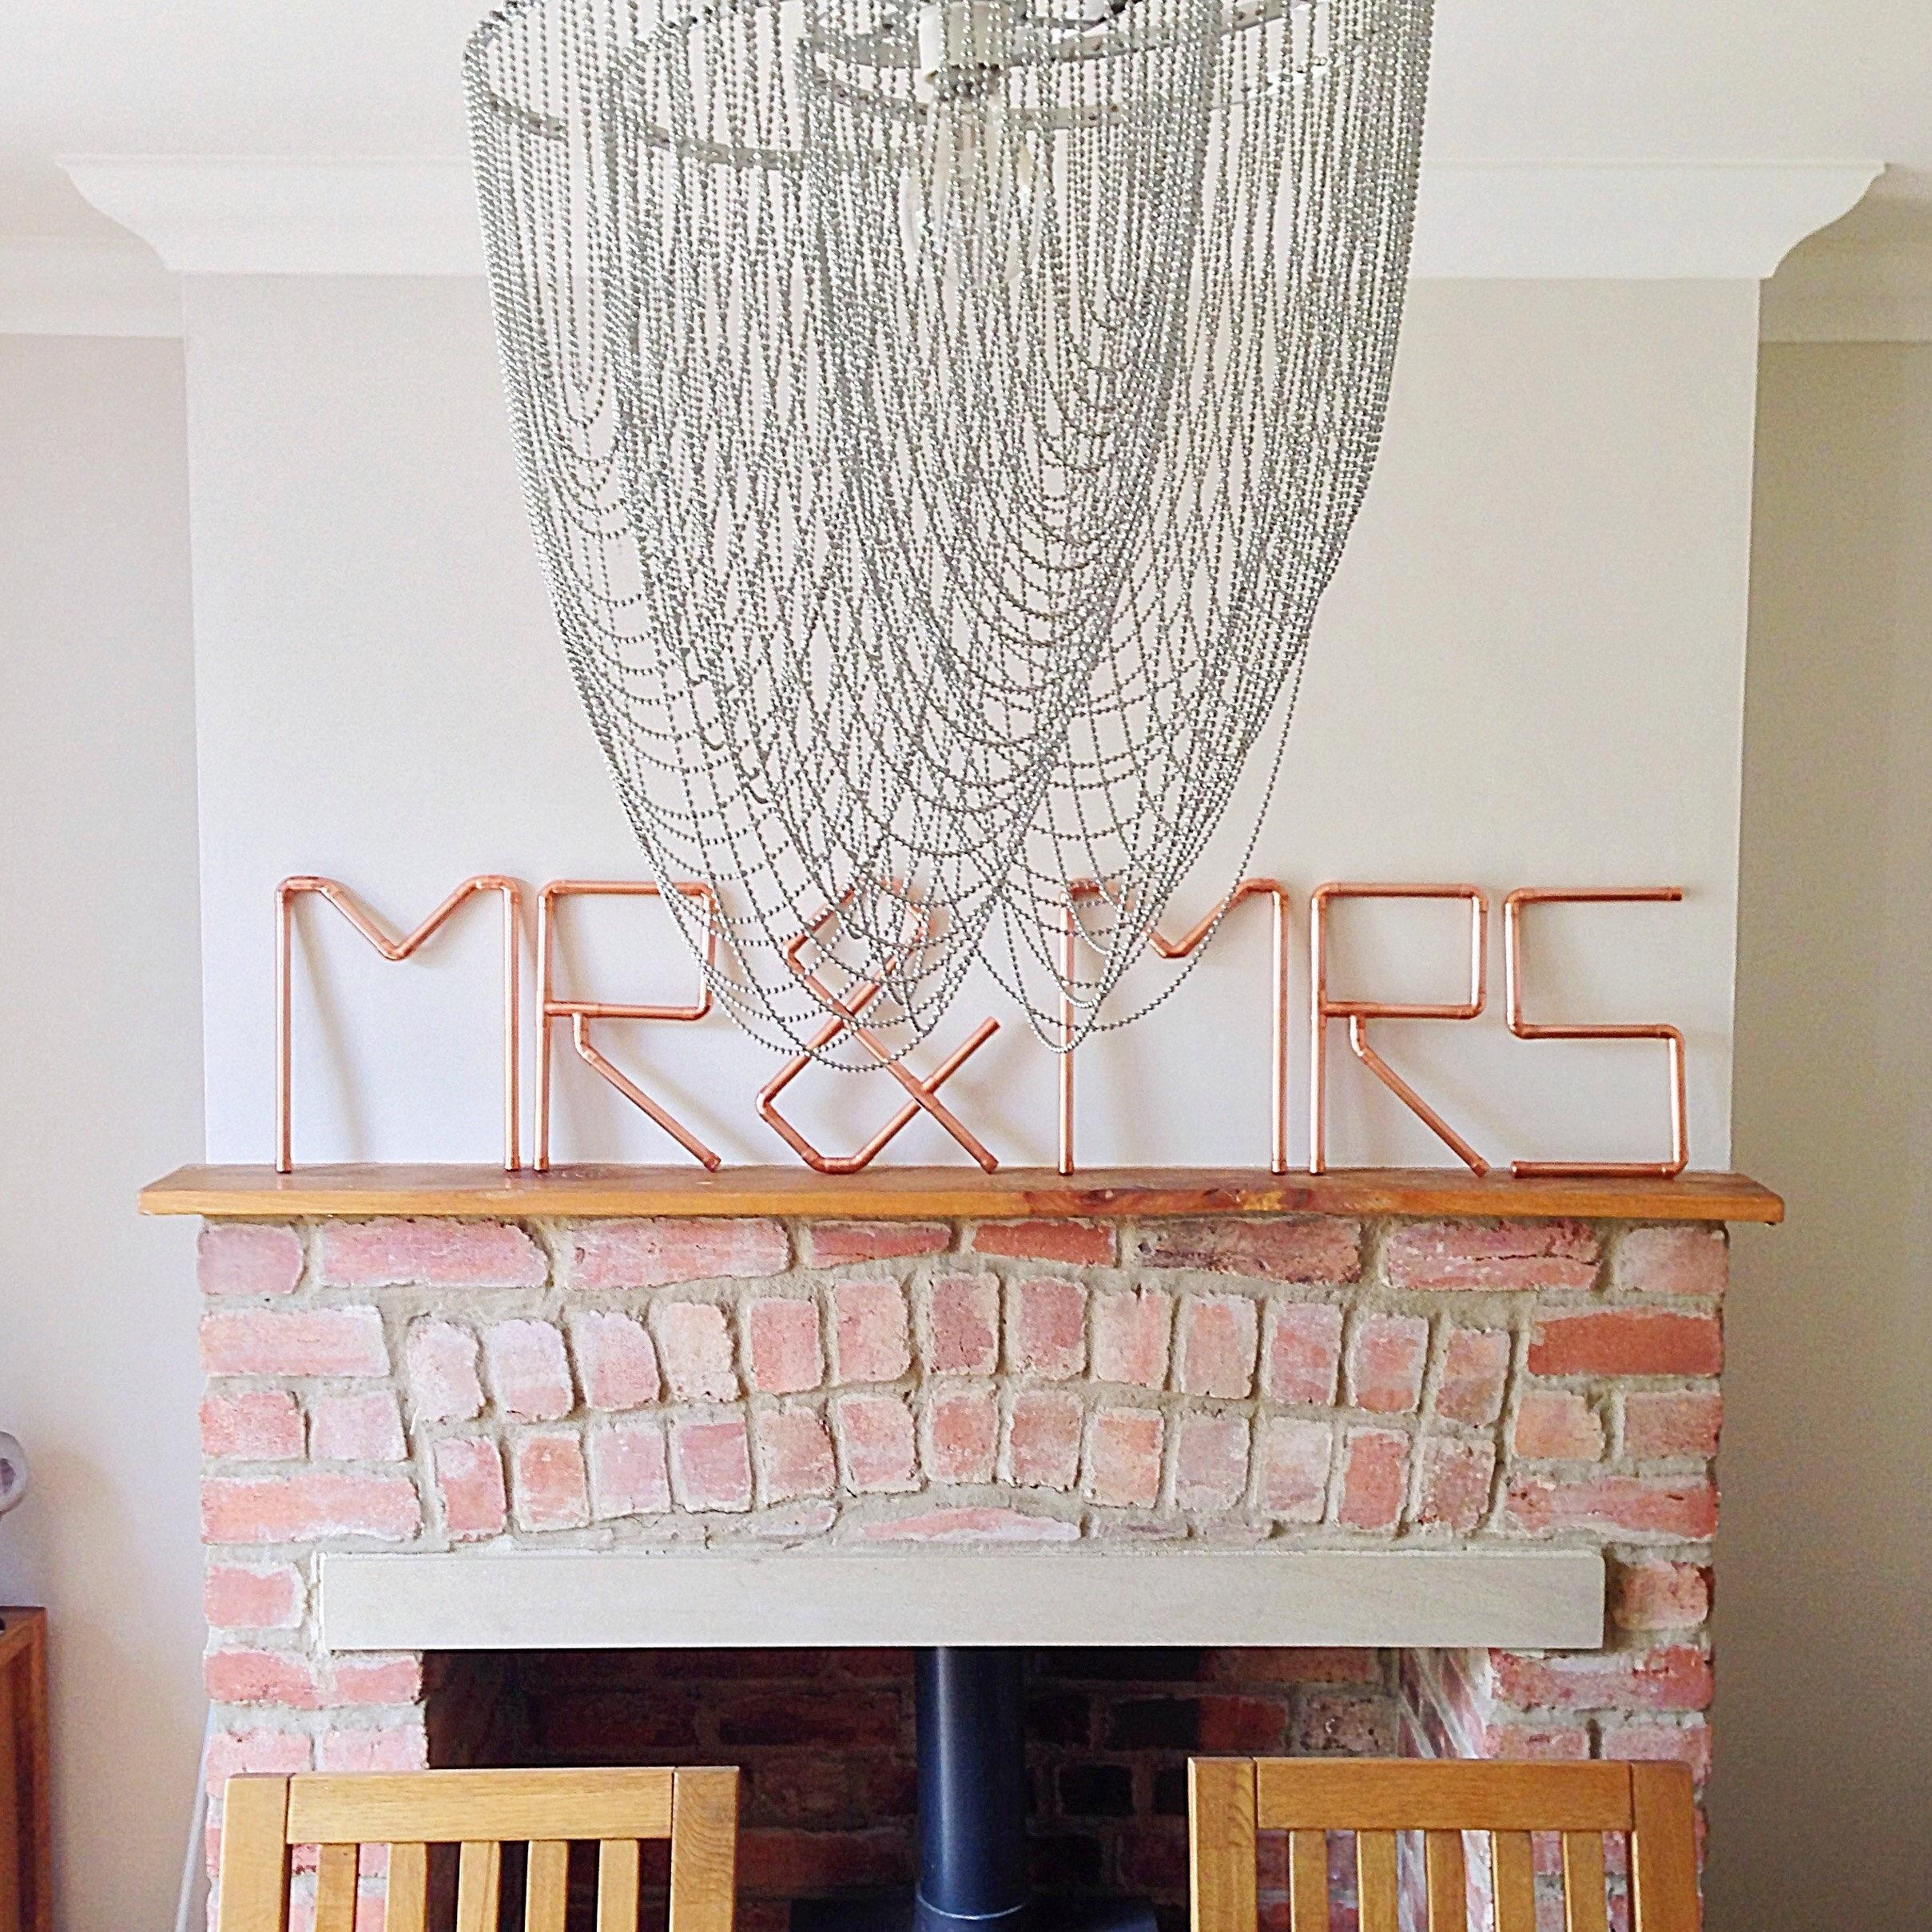 Mr & Mrs, Wall Art, Copper Pipe, Signage, Wedding, Anniversary Intended For Mr And Mrs Wall Art (View 5 of 20)